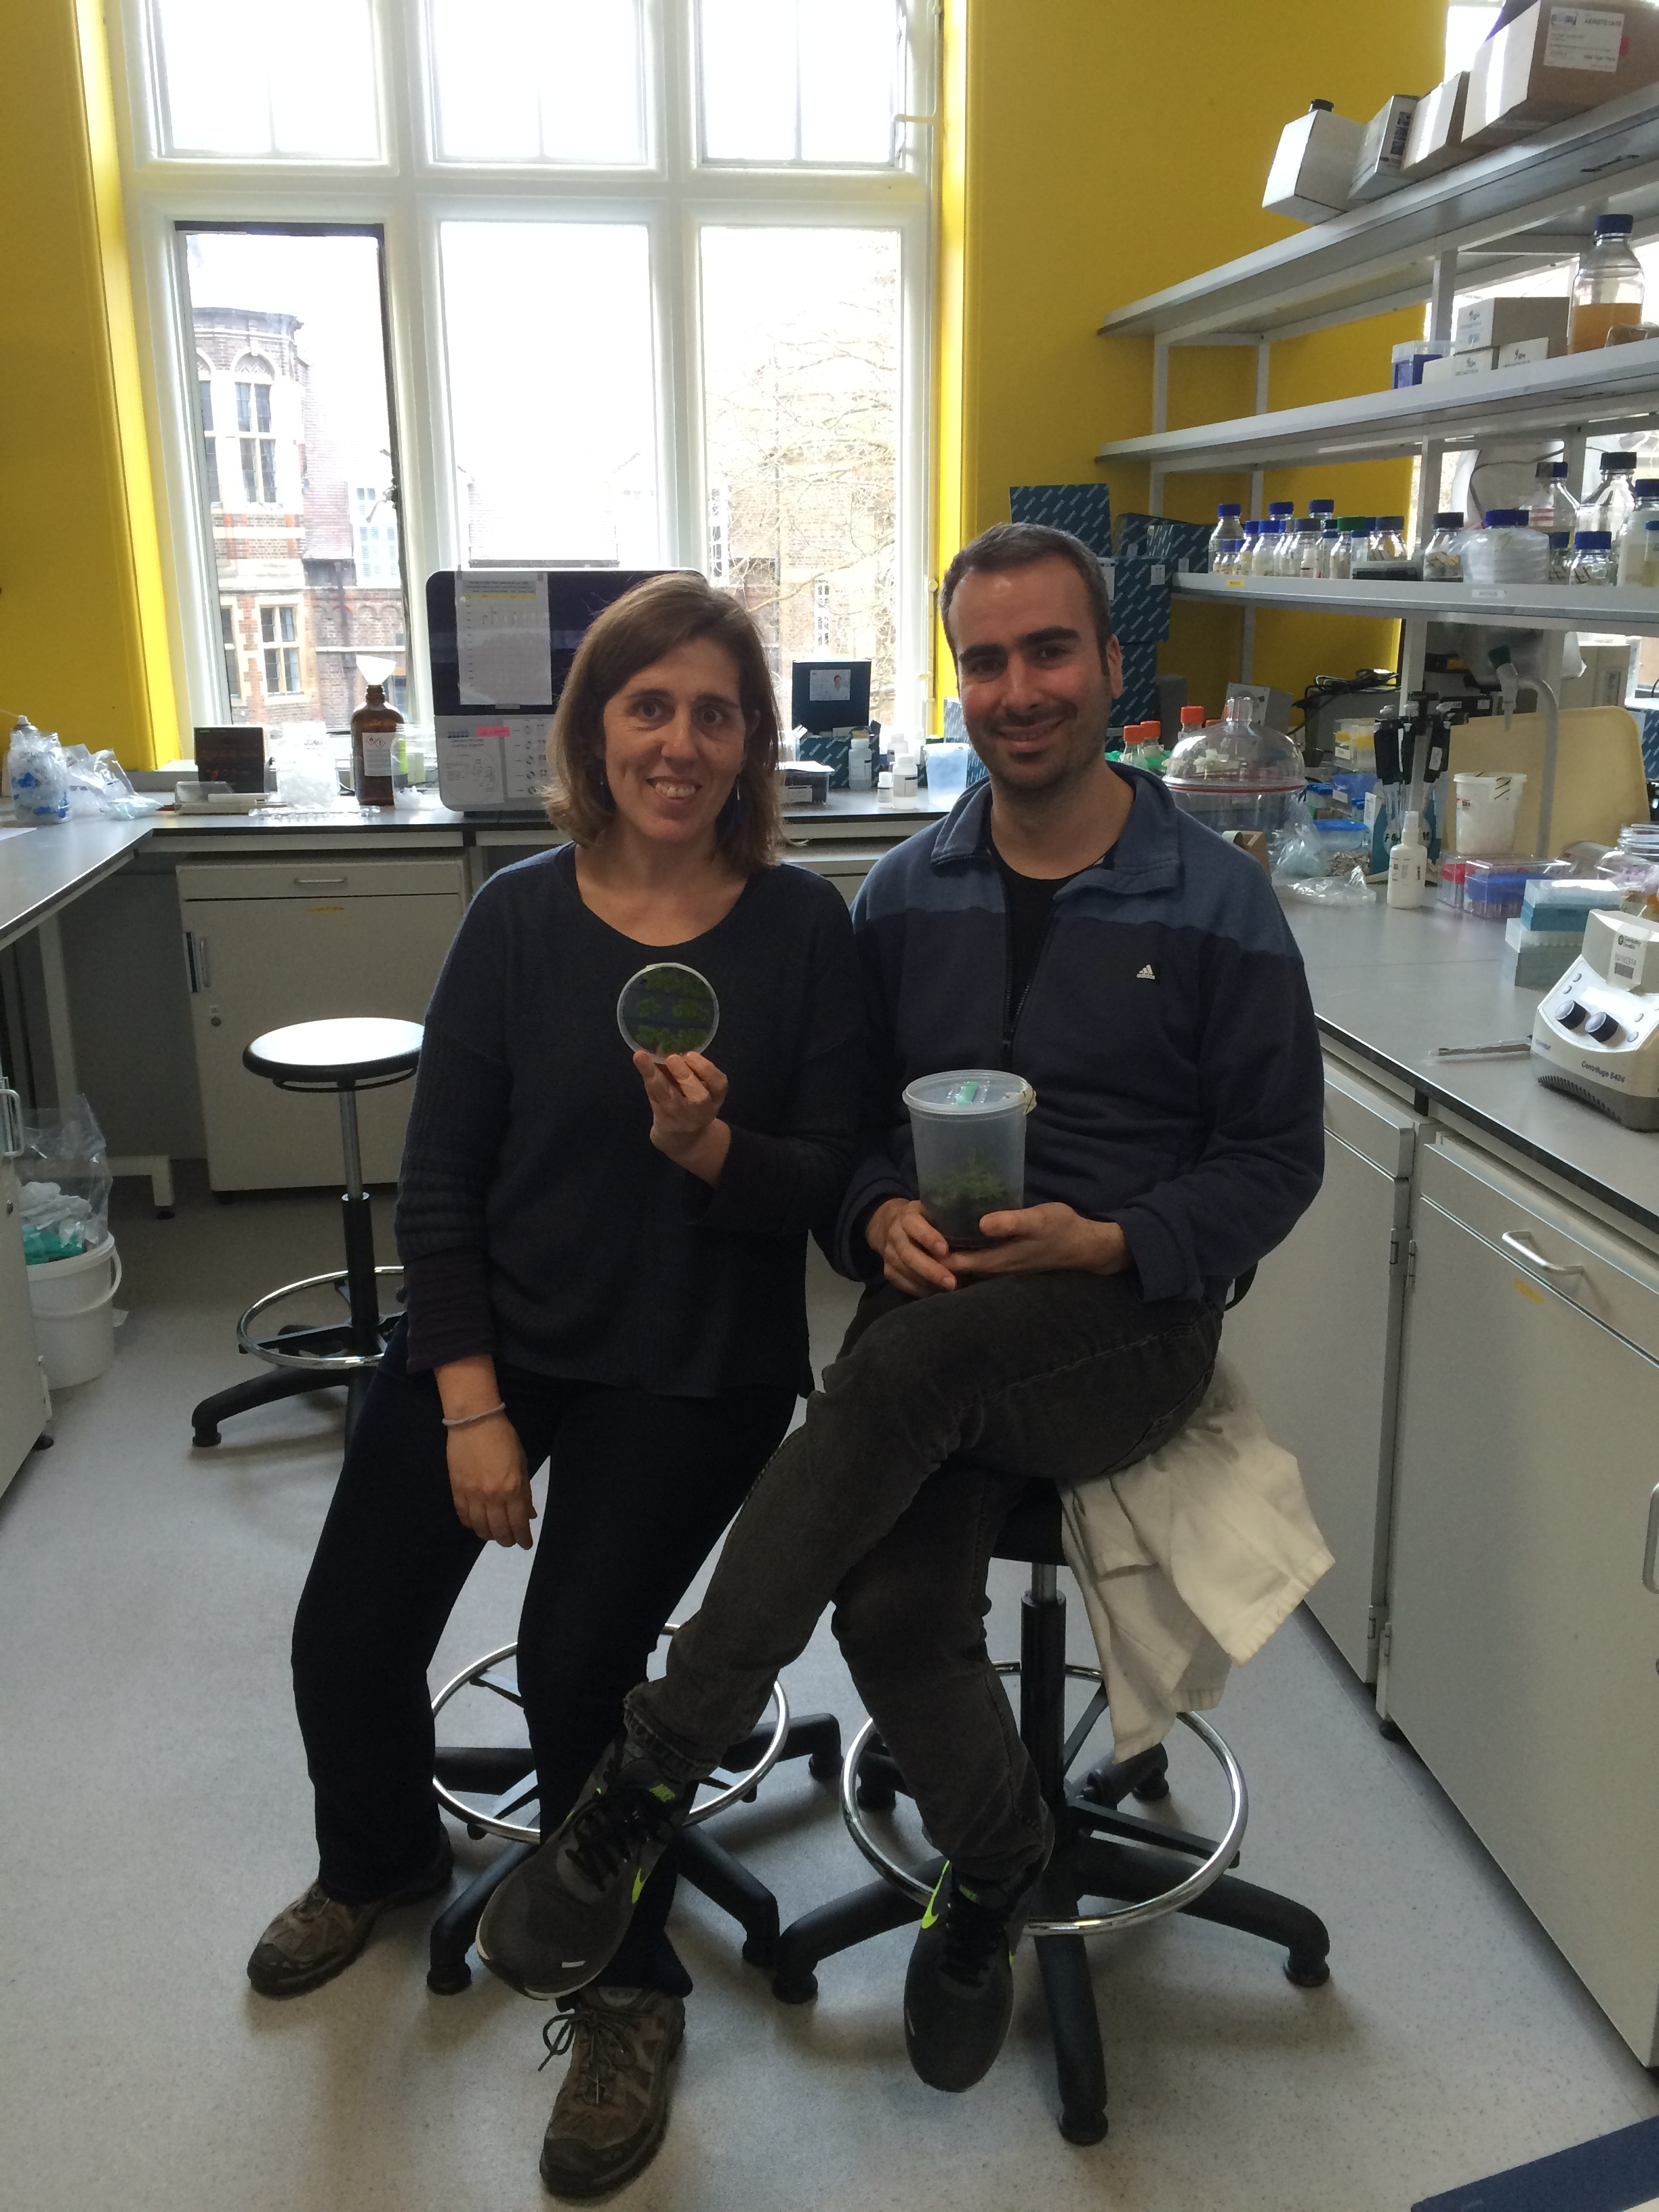 Project collaborators Dr Susana Sauret-Gueto and Dr Eftychios Frangedakis, from the University of Cambridge.